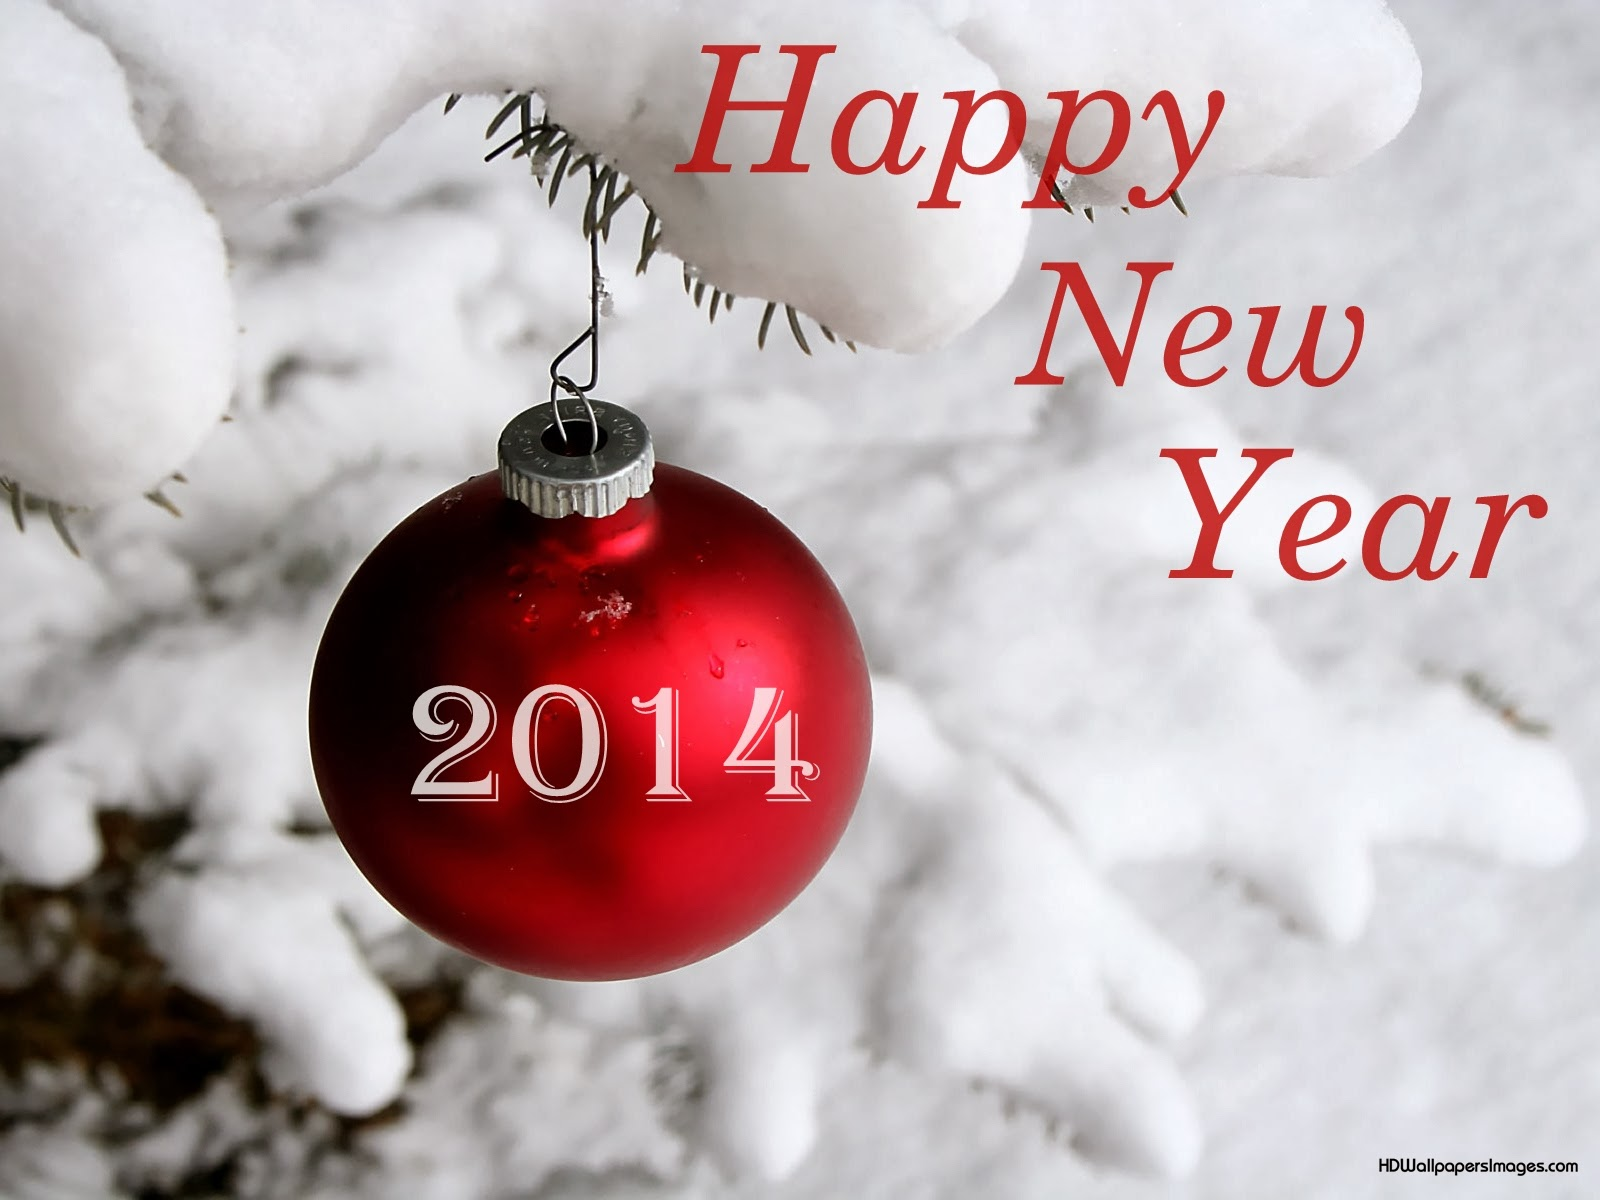 happy new year 2014 wallpapers | sms | quotes for fb - Bollywood ...